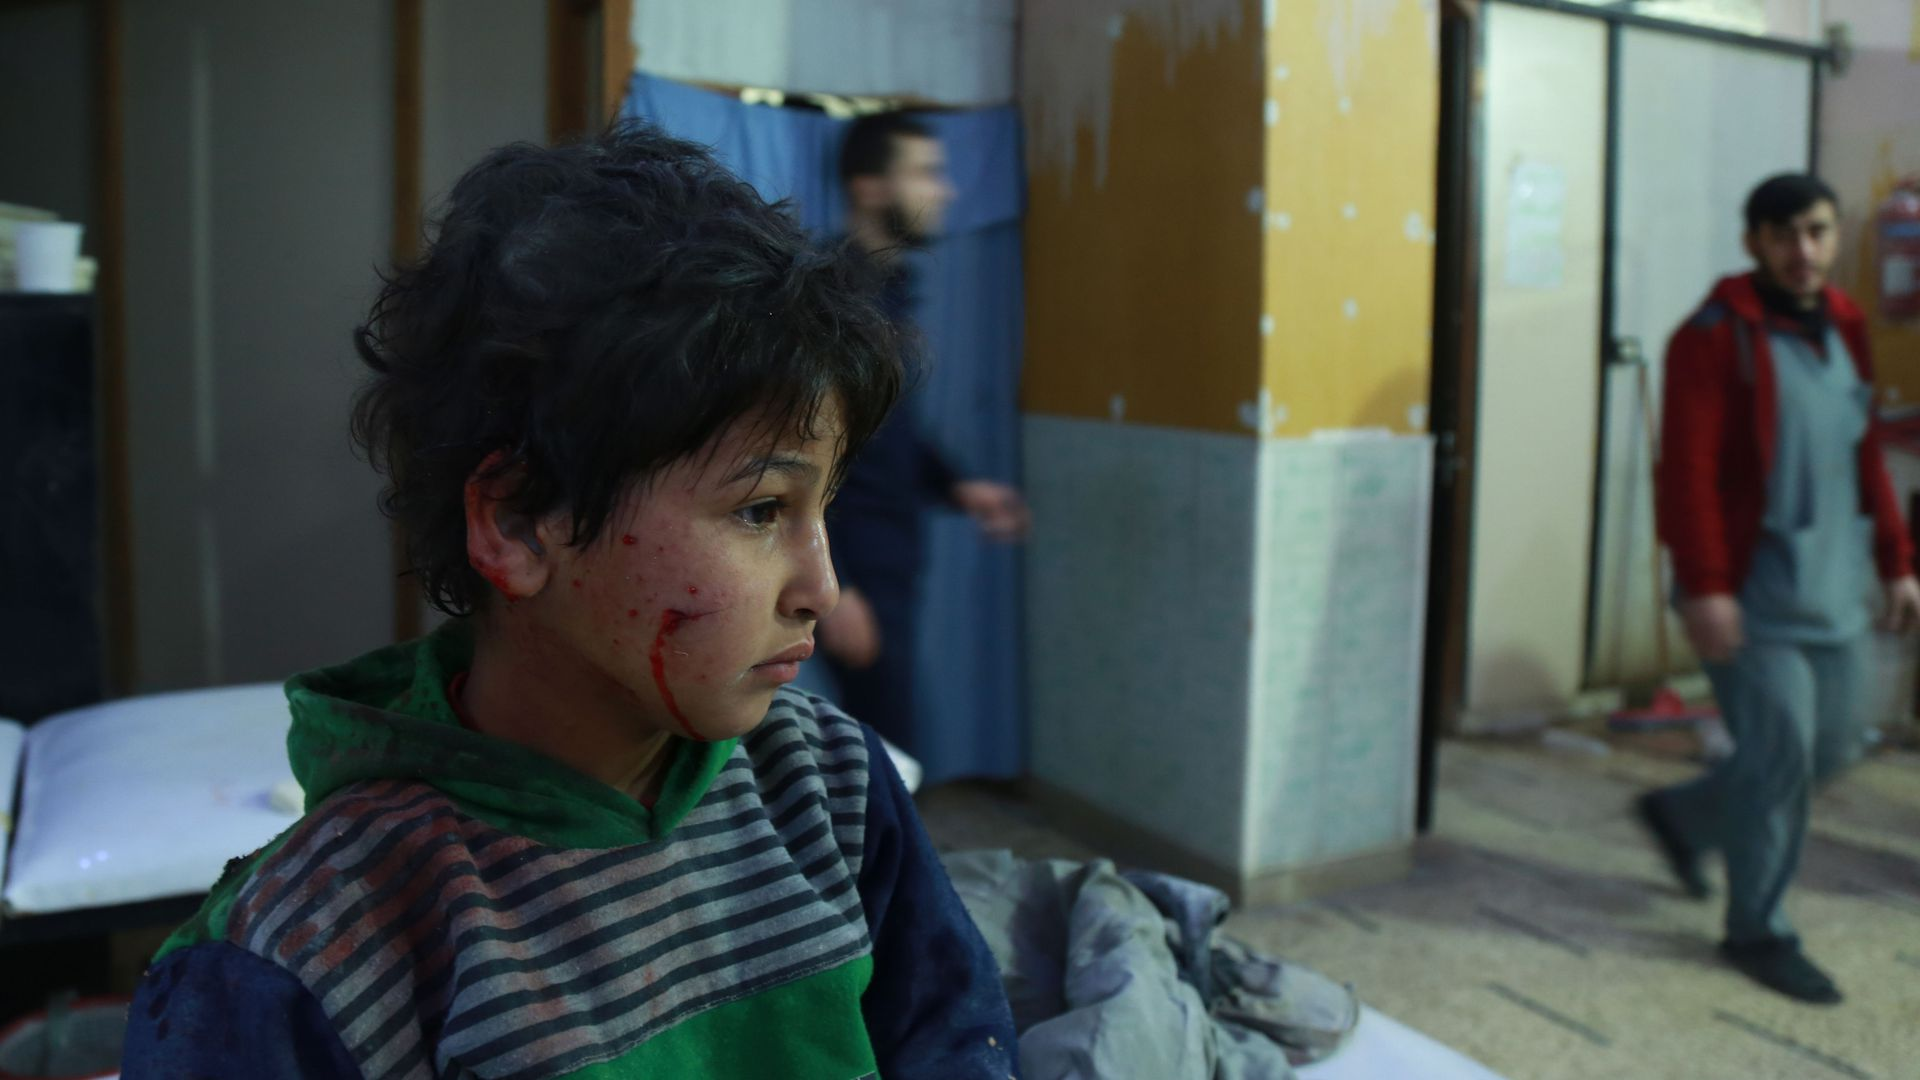 A wounded Syrian child waits for help at a makeshift hospital in the rebel-held town of Douma, in the besieged Eastern Ghouta region.